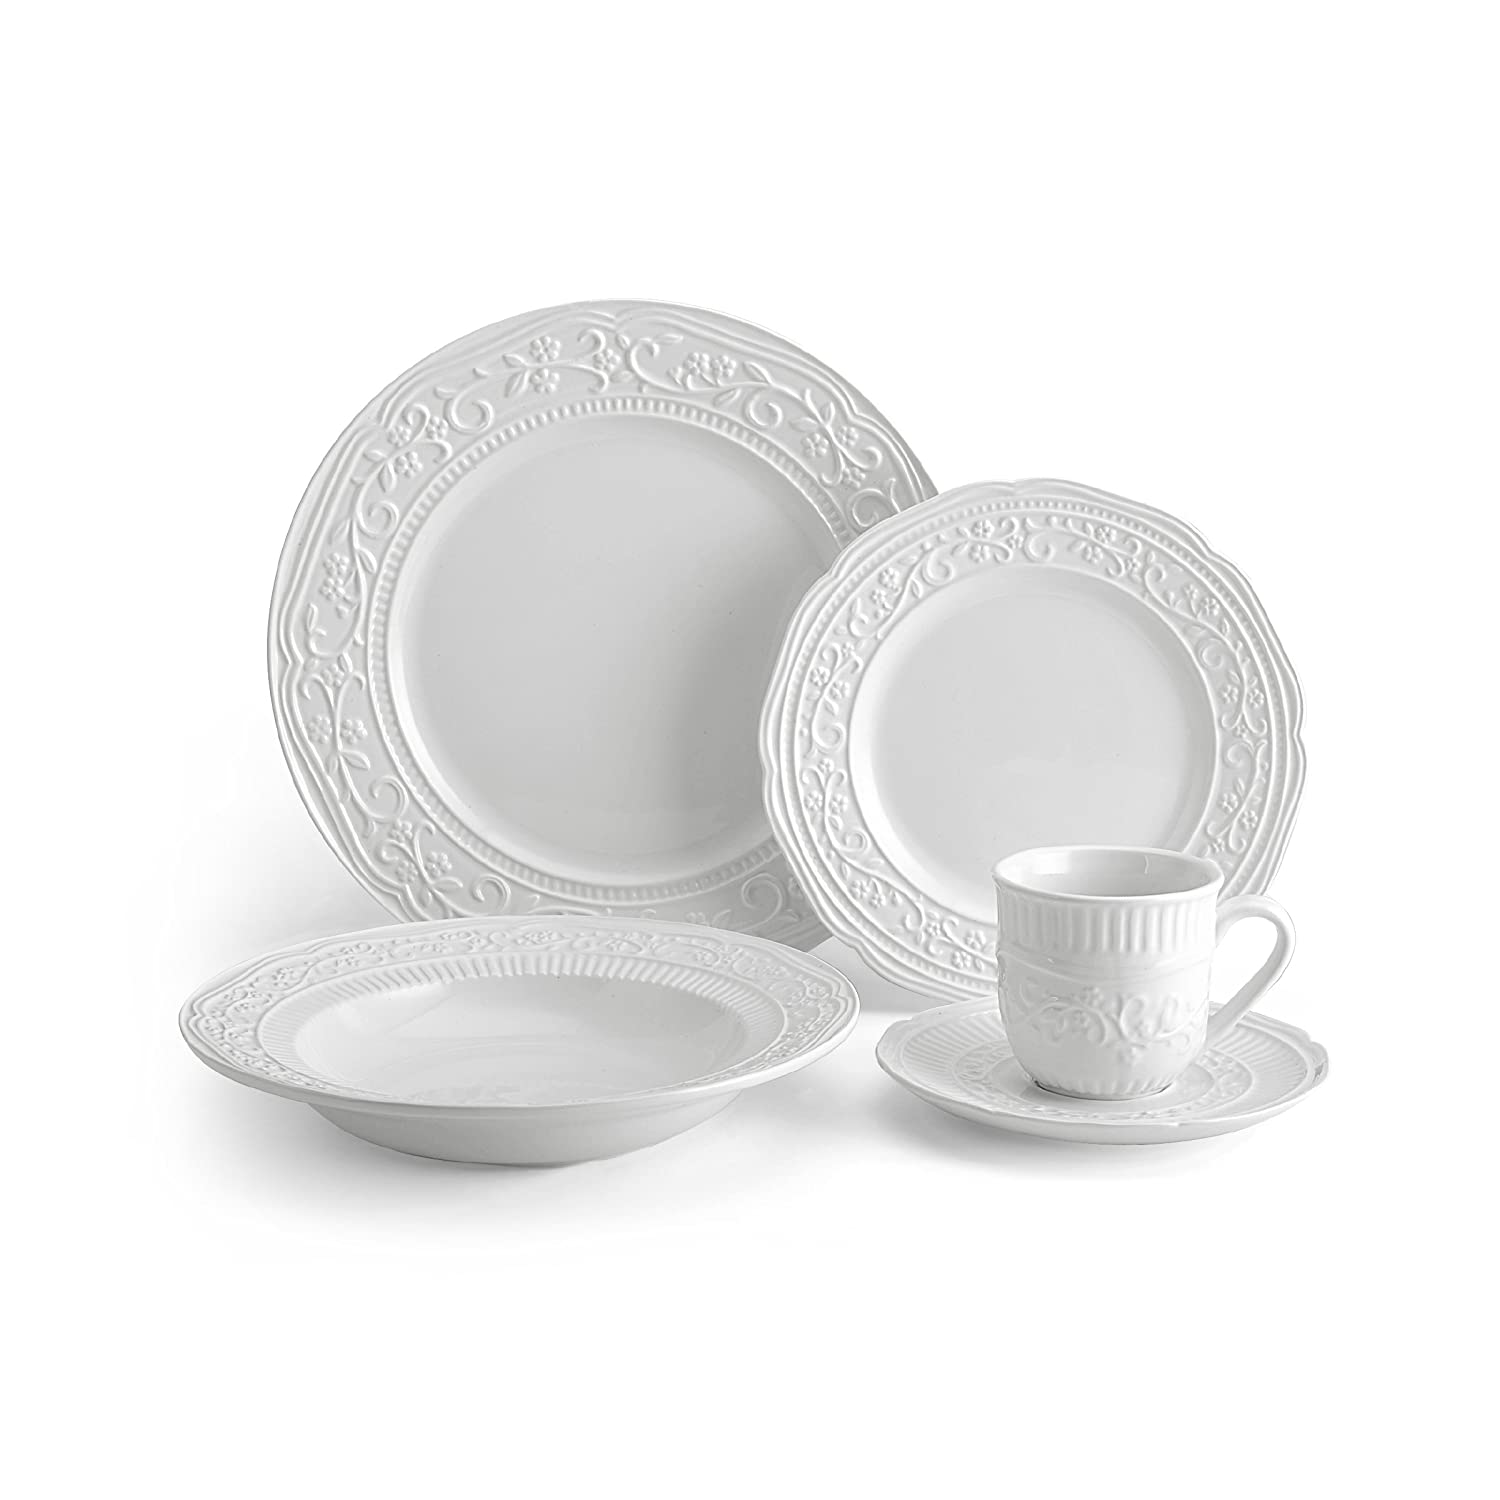 Christmas Tablescape Décor - Mikasa American Countryside 40-piece dinnerware set - Service for 8